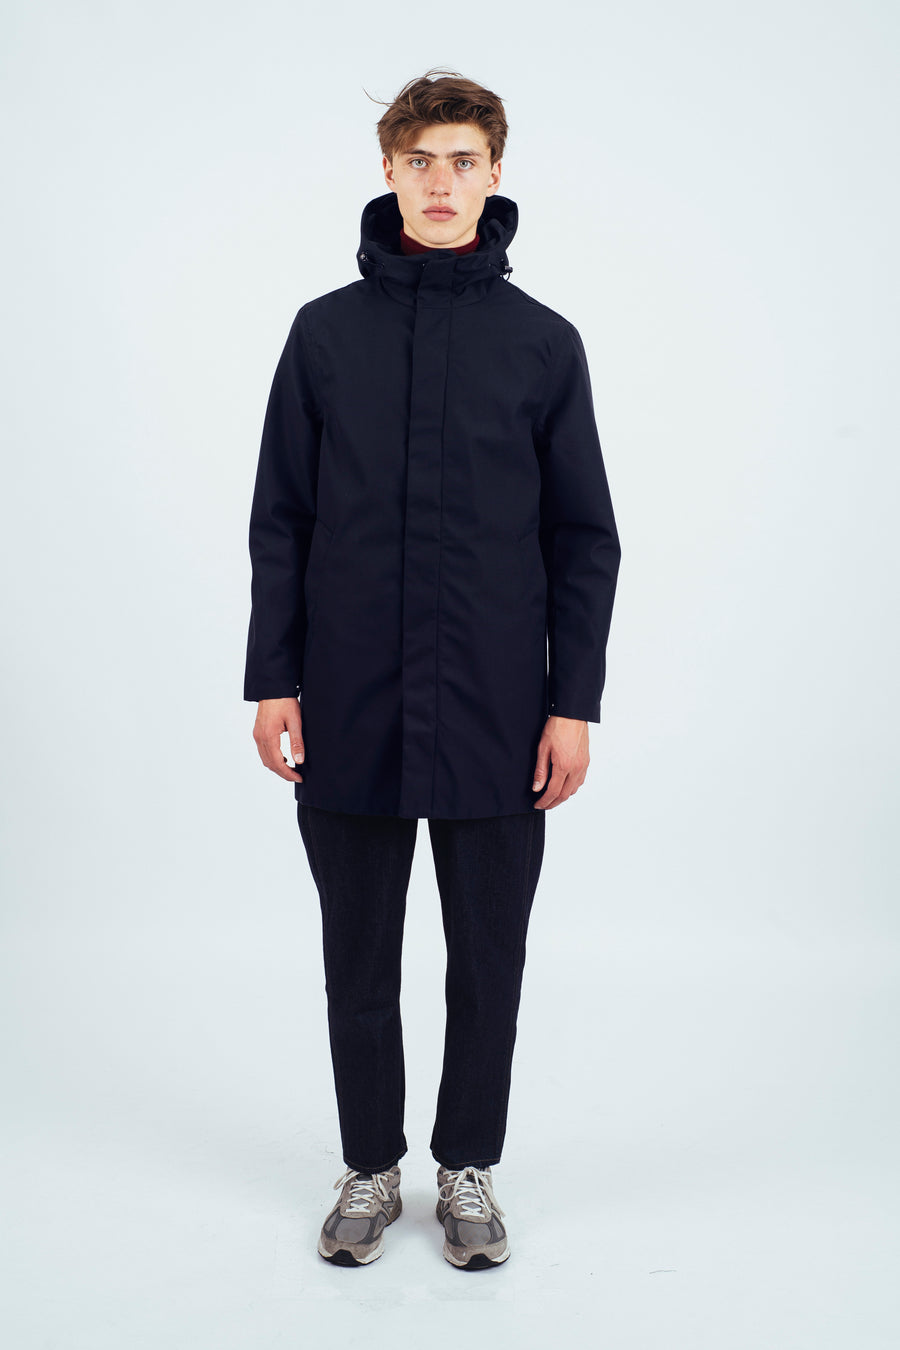 Terror Weather Parka Spoiler Navy with inner - Welter Shelter - Waterproof, Windproof, breathable Packable